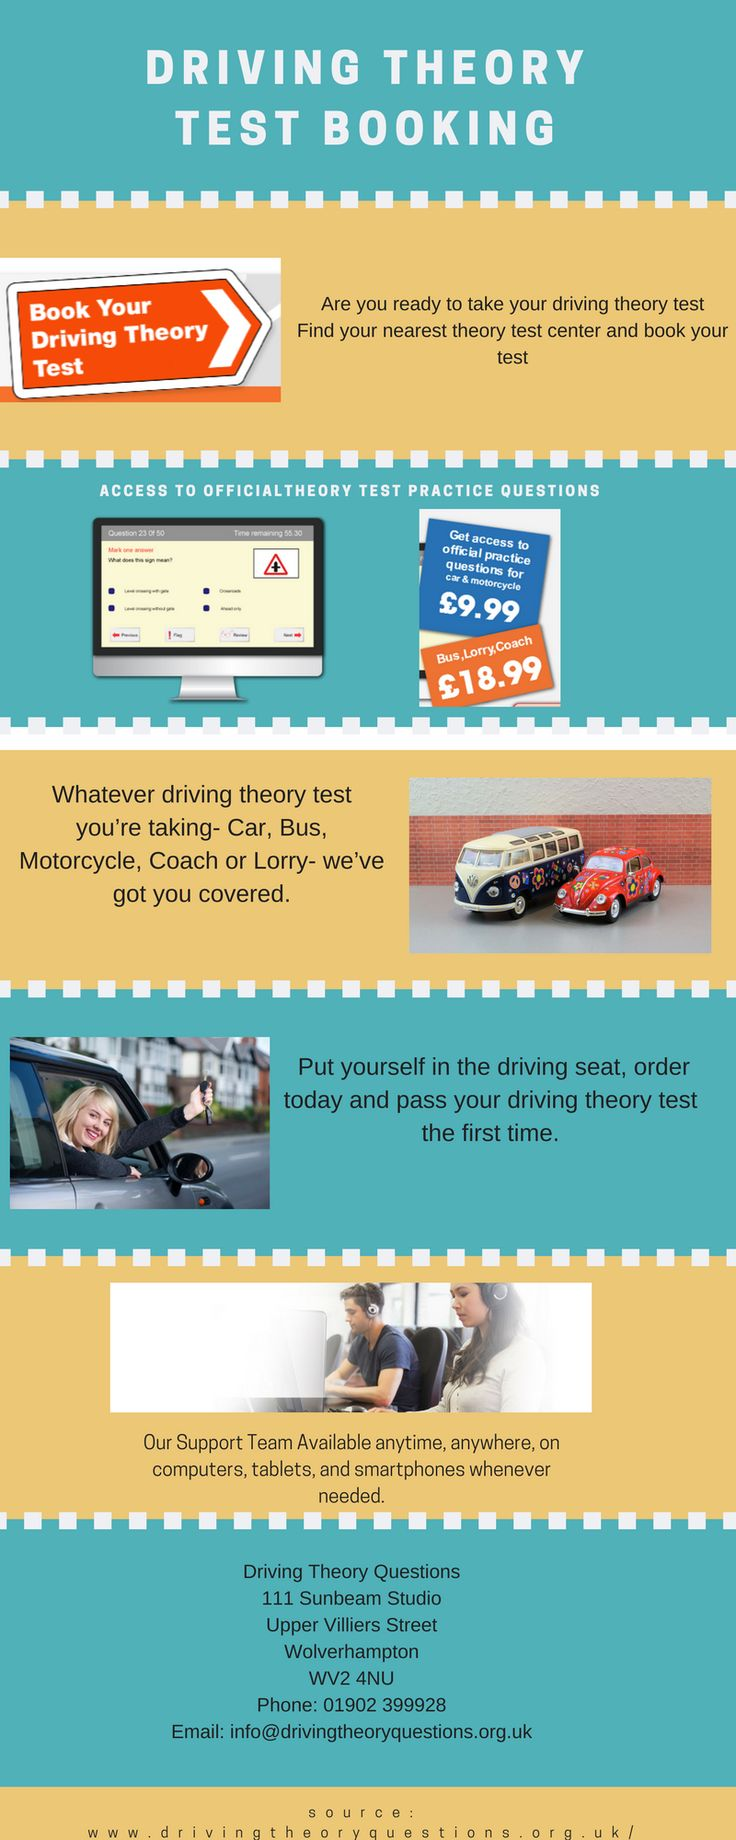 If you are going to take your Driving Theory Test and worried about how and from where you can book your exam, don't worry Driving Theory Question will help you to book your exam and also help to find nearest test center at your location. Book today!